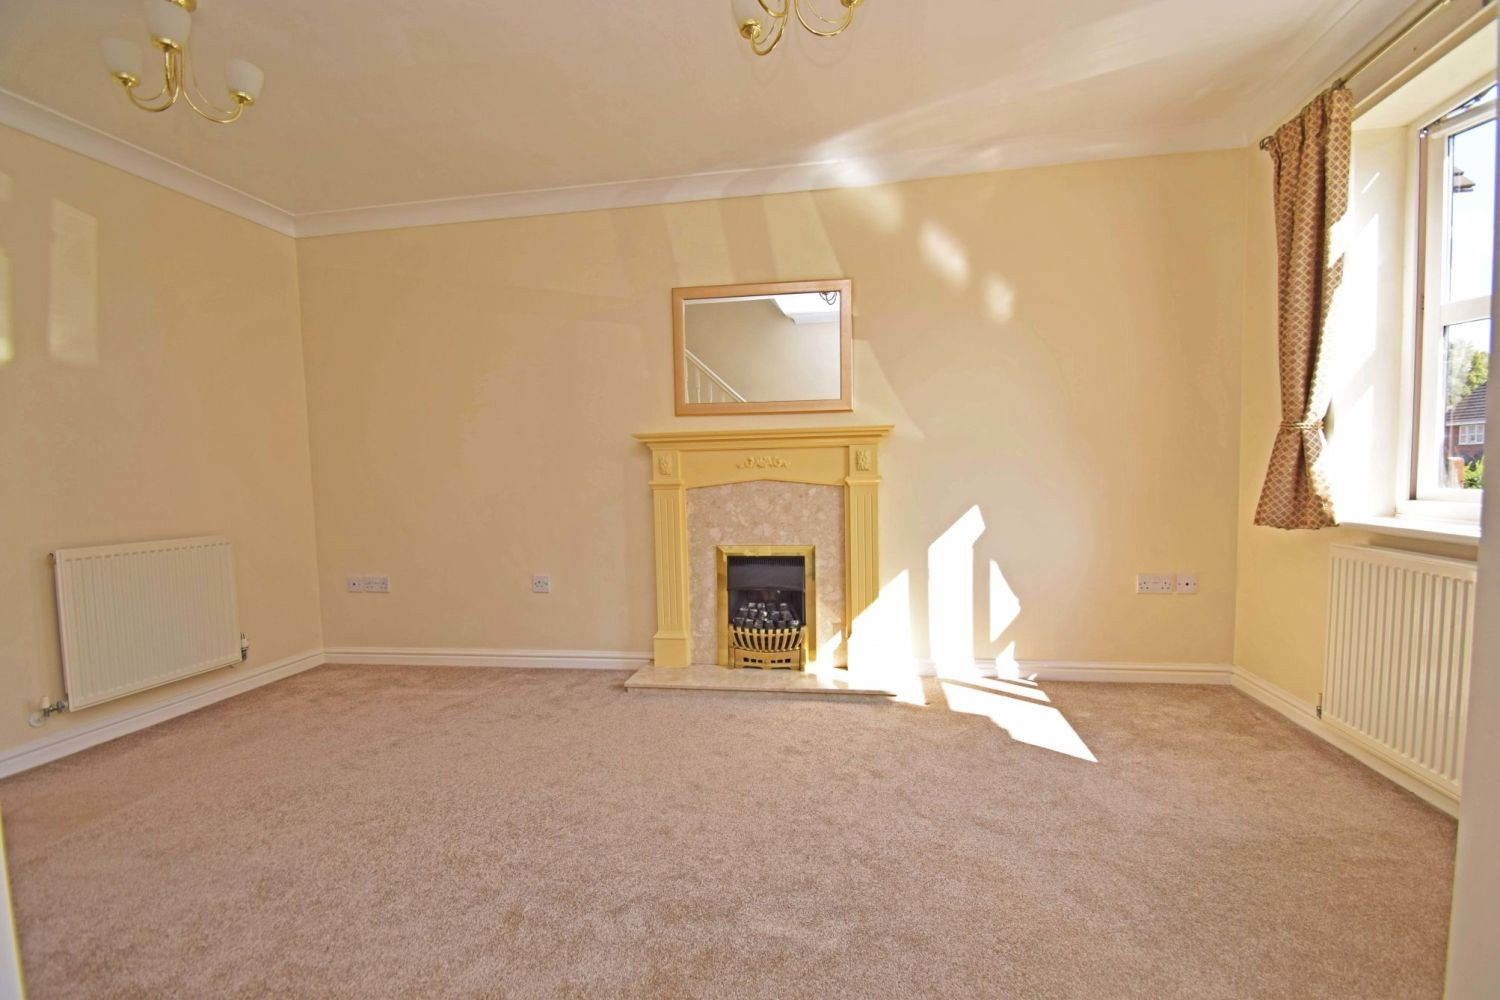 2 bed terraced for sale in Mallow Drive, Woodland Grange  - Property Image 2